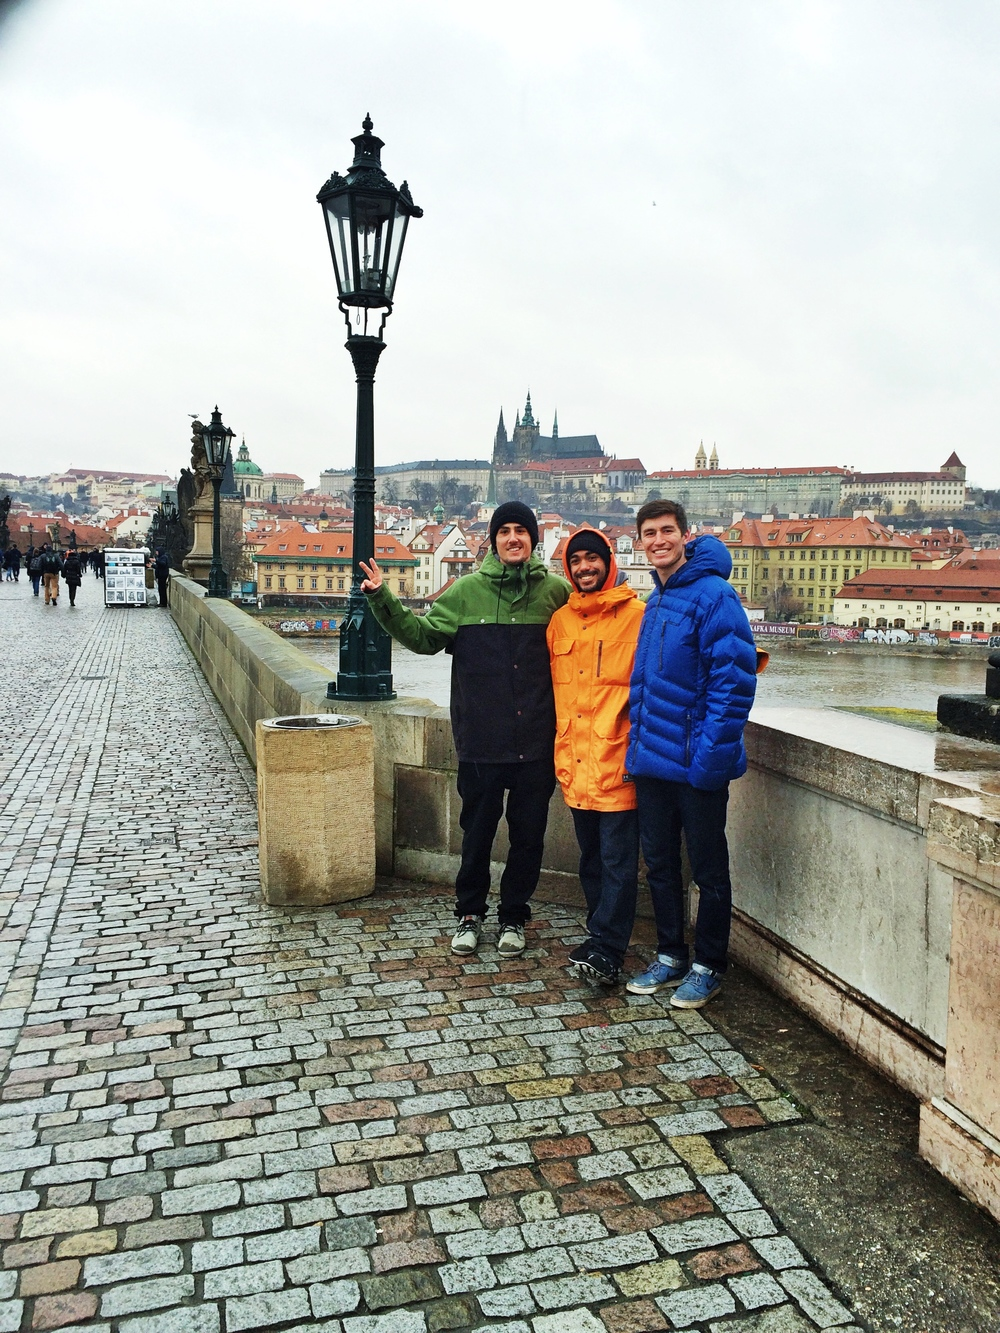 On the Charles Bridge, with the Castle in the background